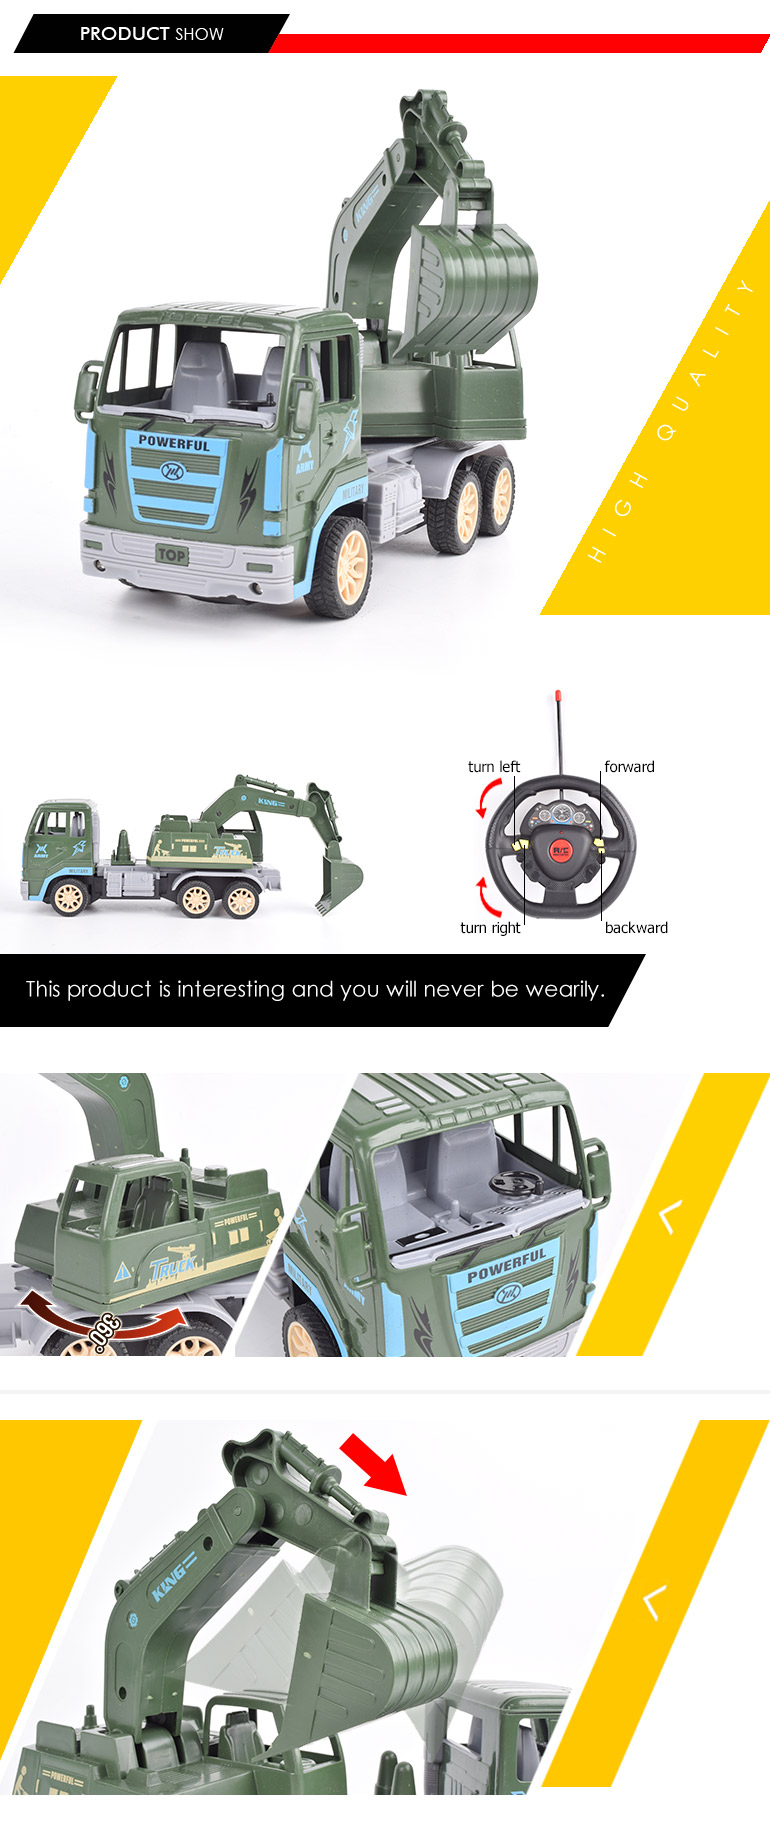 4ch gravity sensor military construction toy trucks remote control excavator for sale